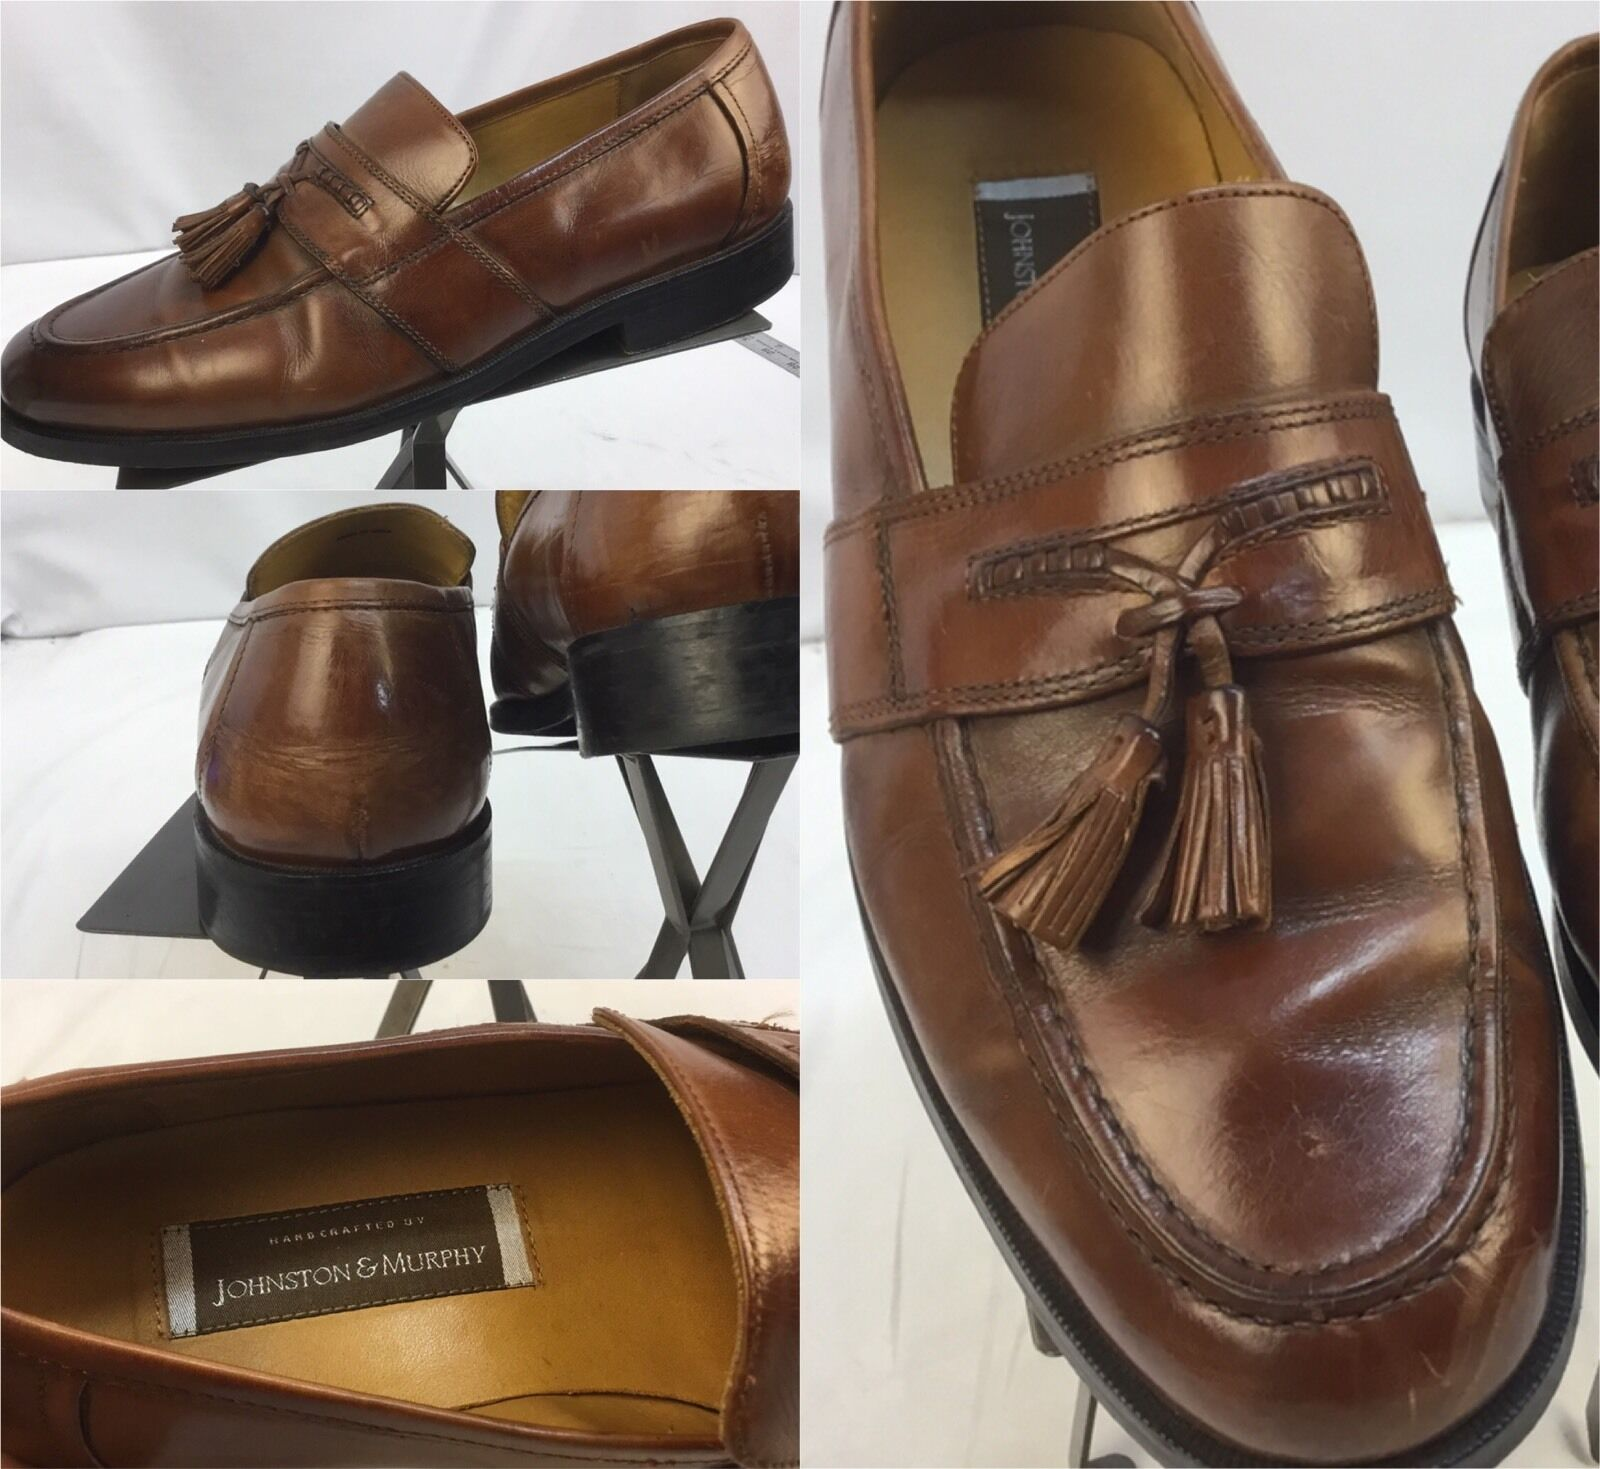 Johnston Murphy M Dress Shoes Sz 10.5 M Murphy Brown Loafers Tassels India EUC YGI M 6c5080